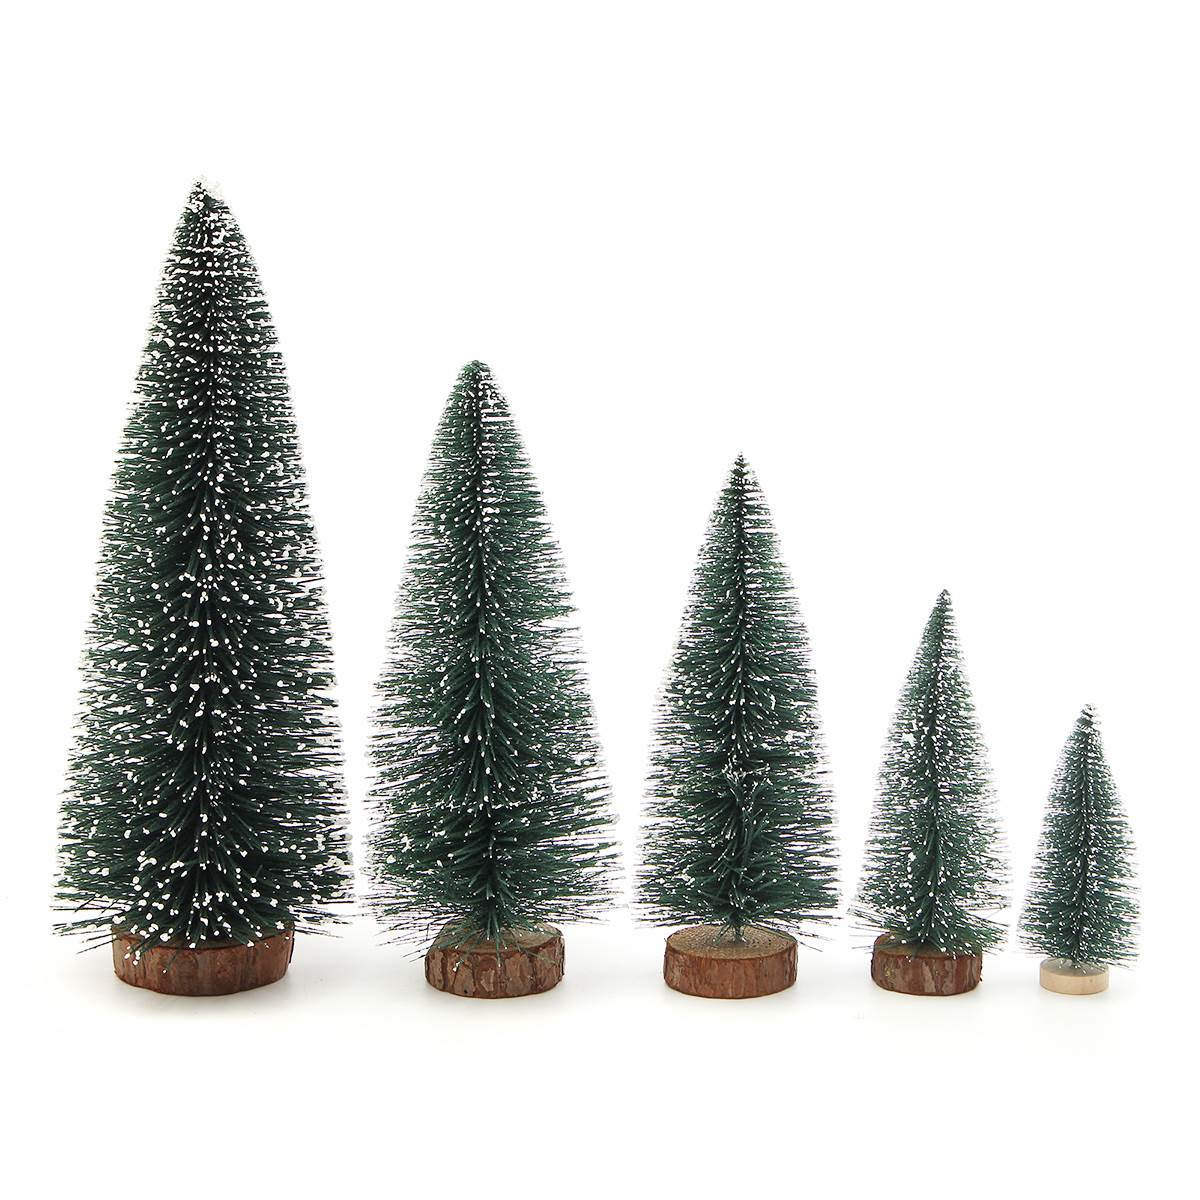 1pcs Mini Plastic Artificial Christmas Tree Miniatures Toys Diy Decorations Model Gift 10 30cm For Children In Building Kits From